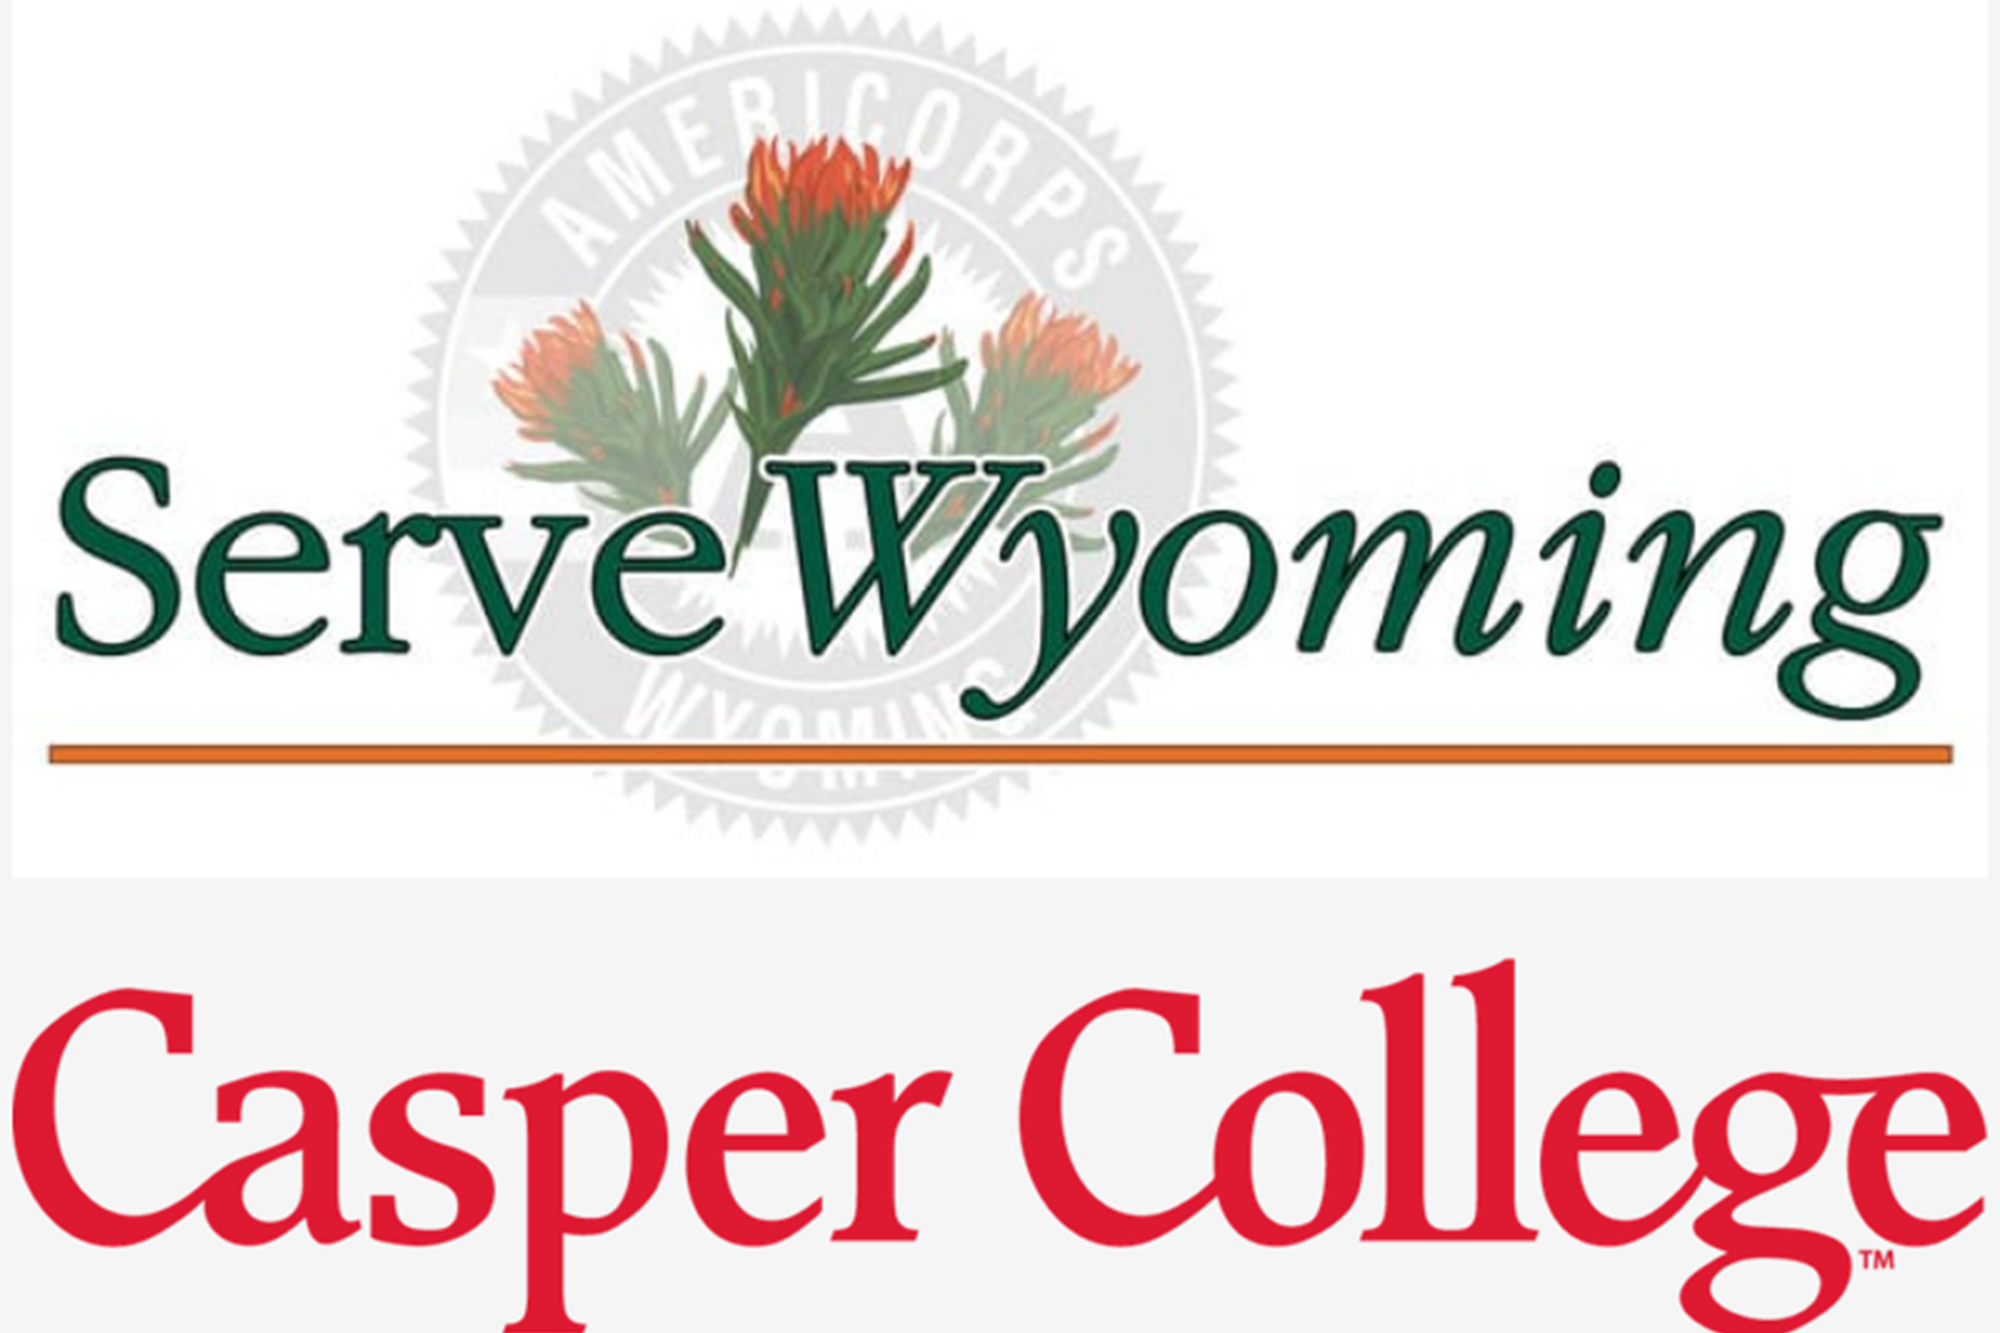 Image combining the logo of Serve Wyoming and Casper College